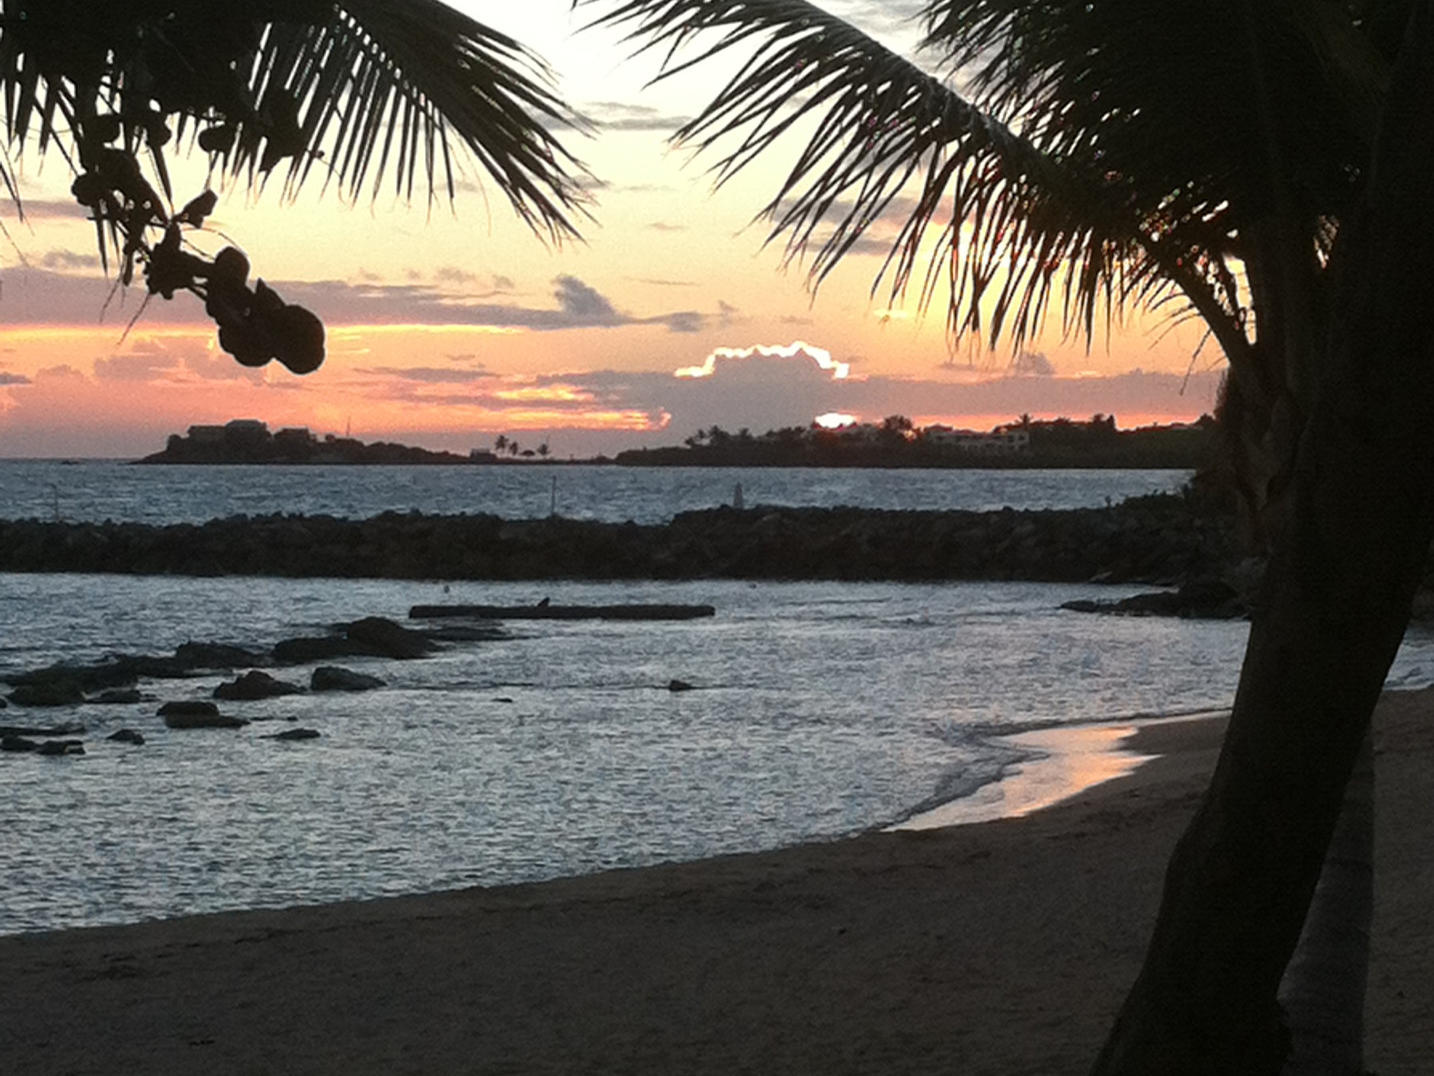 Sunset on beach at Tamarind Reef Resort